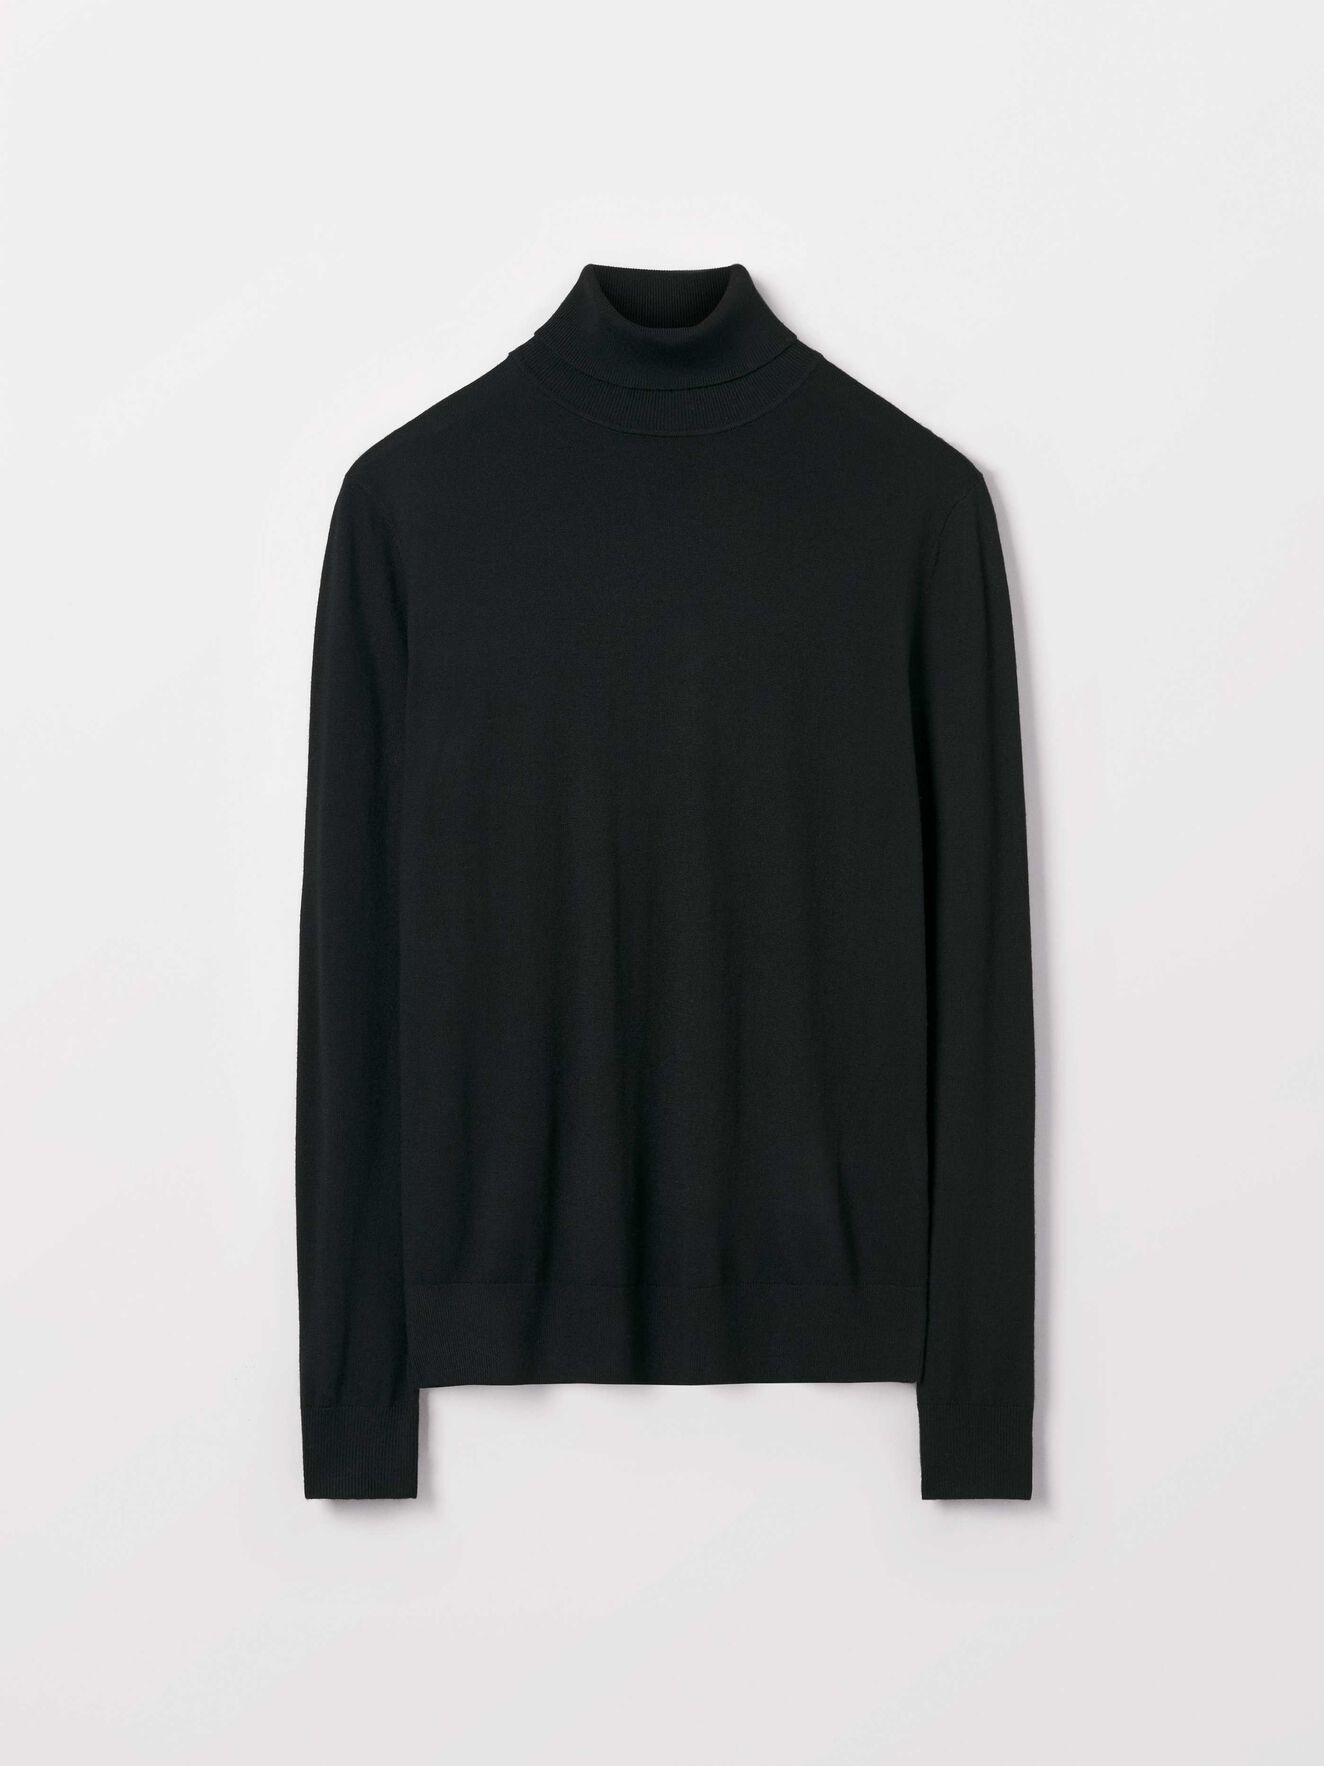 Nevile Pullover in Black from Tiger of Sweden